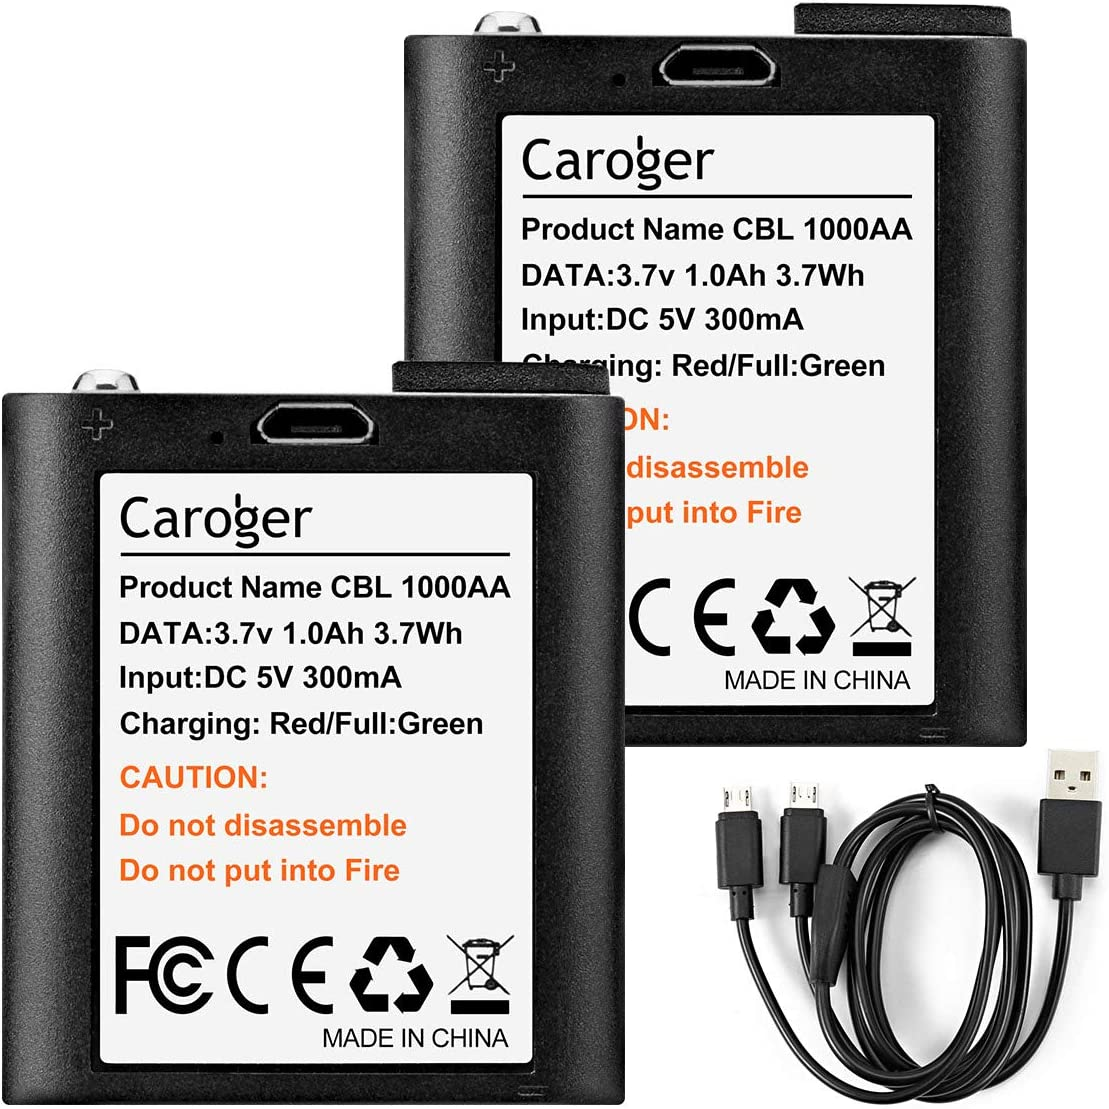 Caroger Two Way Radio Batteries 3AA Rechargeable Li-ion Battery with USB Charging Cable 3.7V 1000mAh Suitable for Walkie Talkies 628/638/880/FC200 (2 Pack)